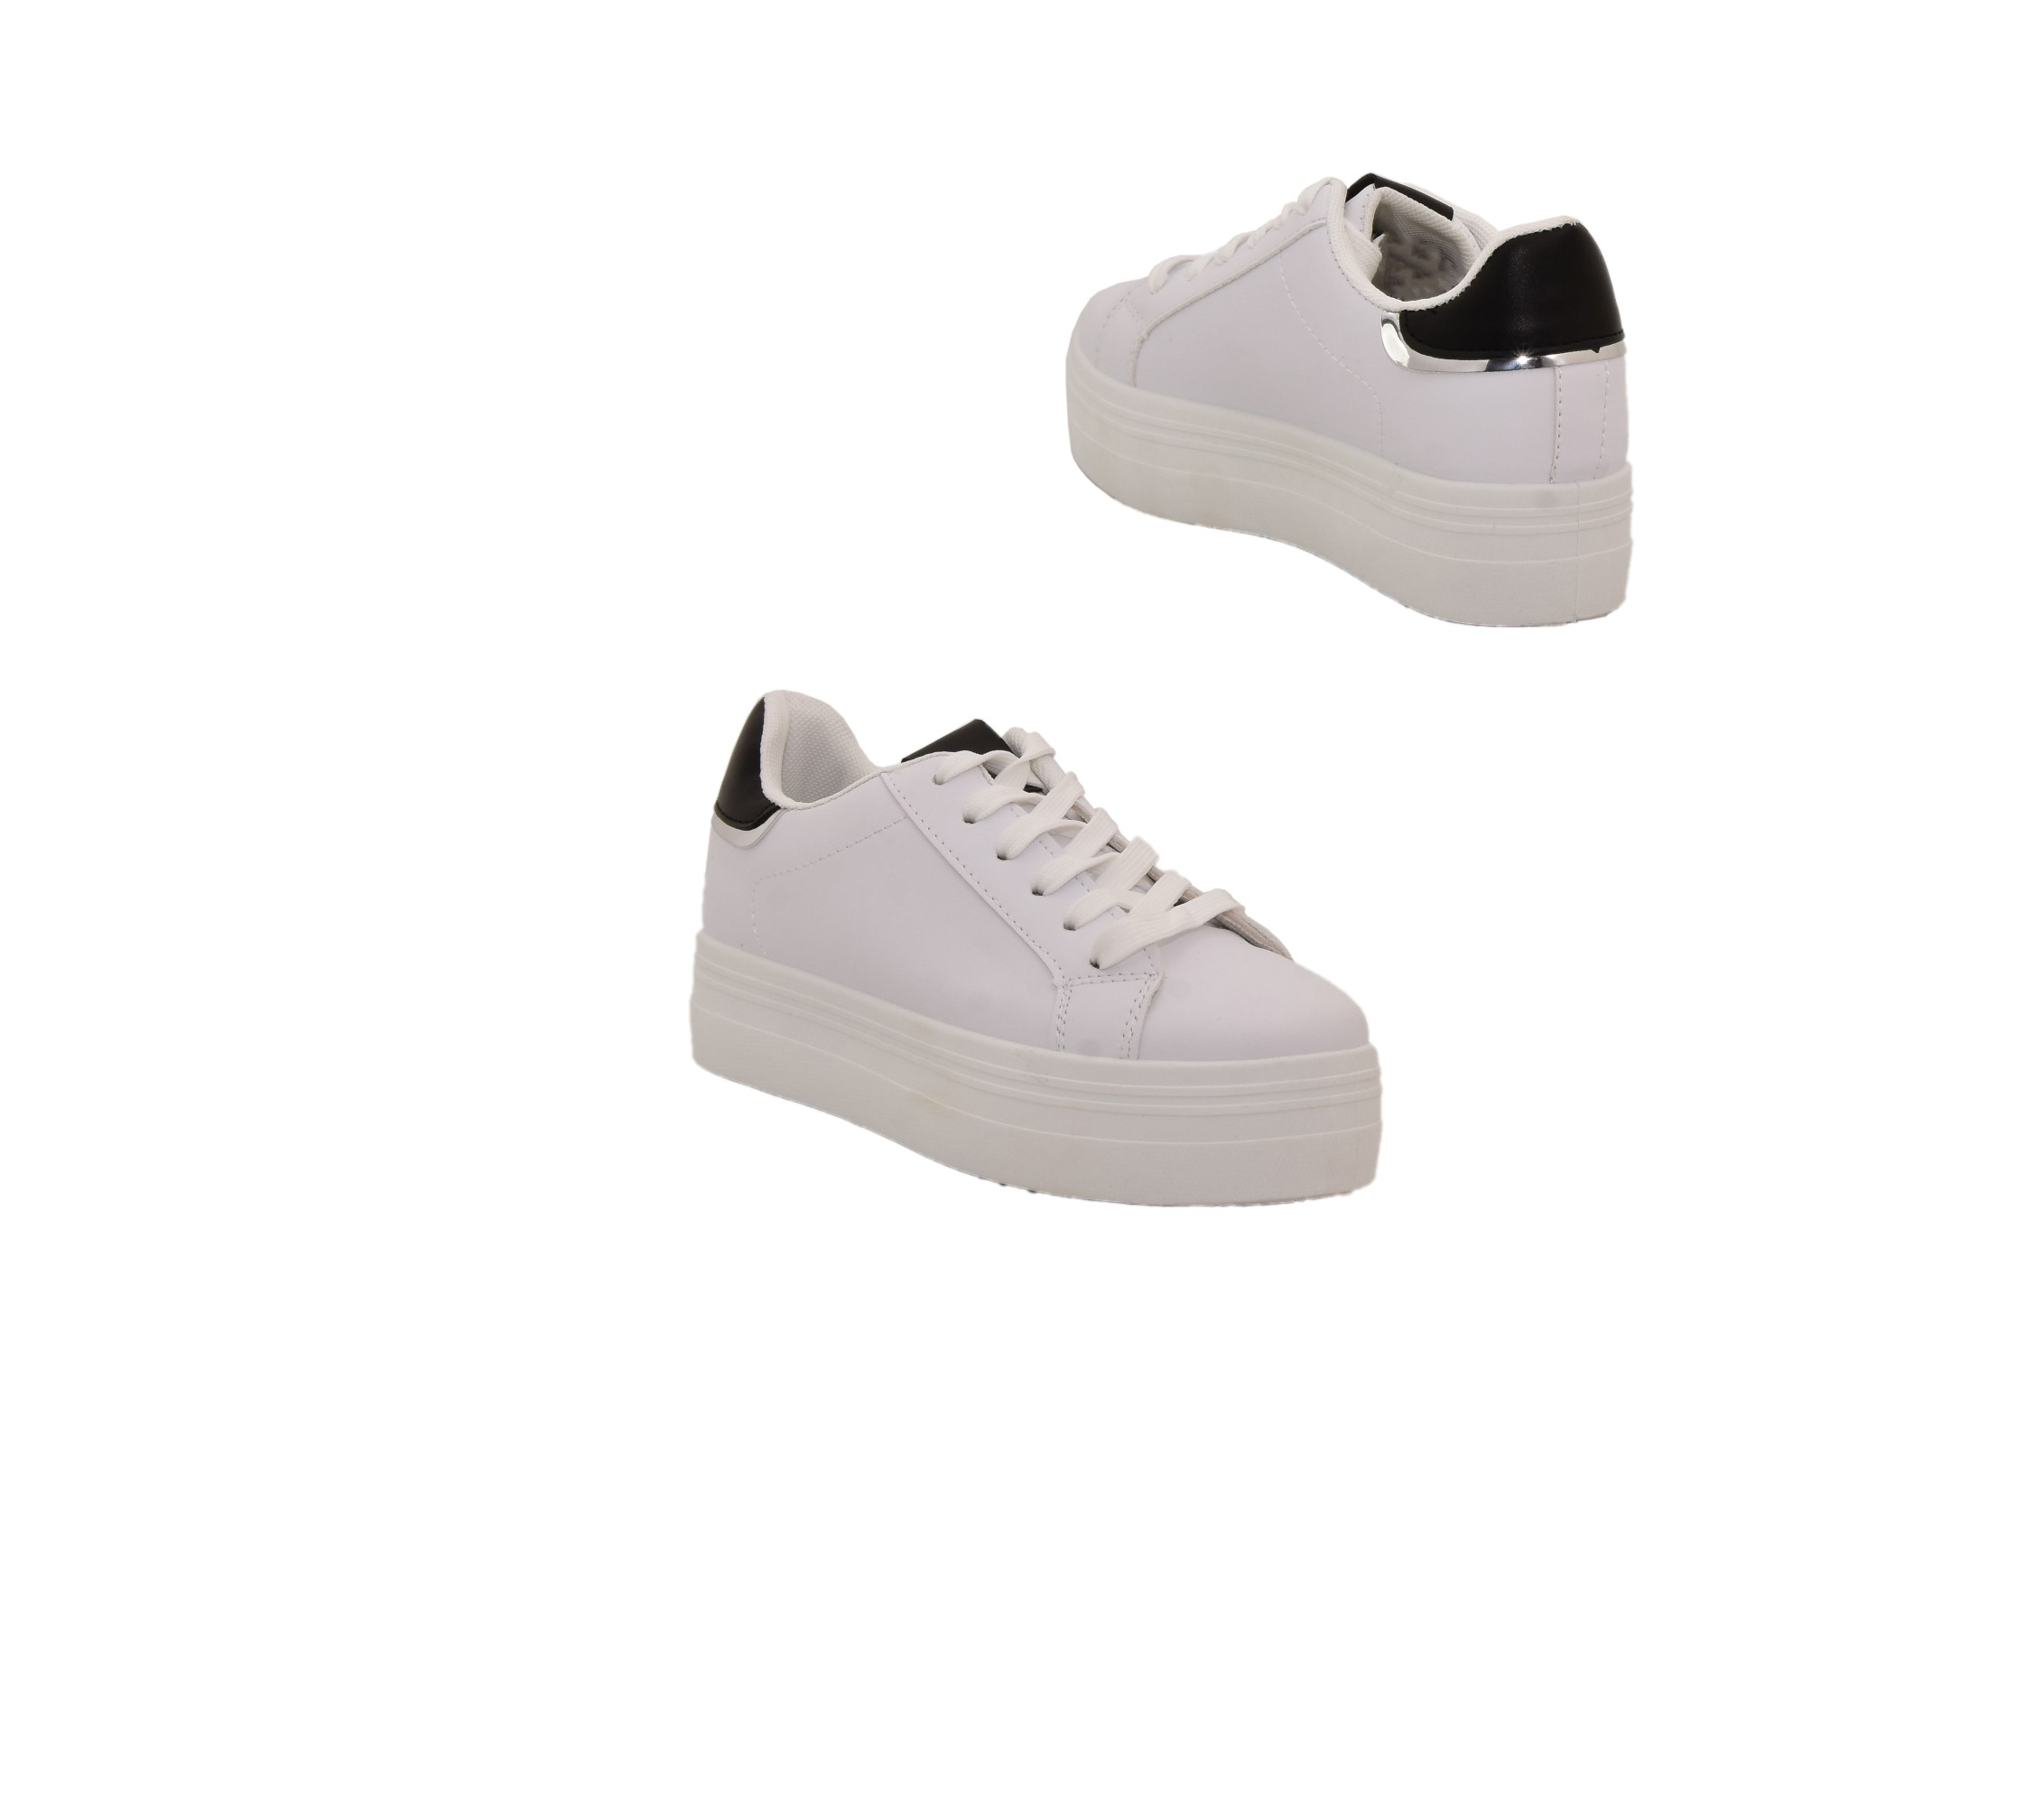 official photos 0c46d 7b80c Damen Sneaker mit Dicke Sohle in weiß Sportschuhe Plateausohle